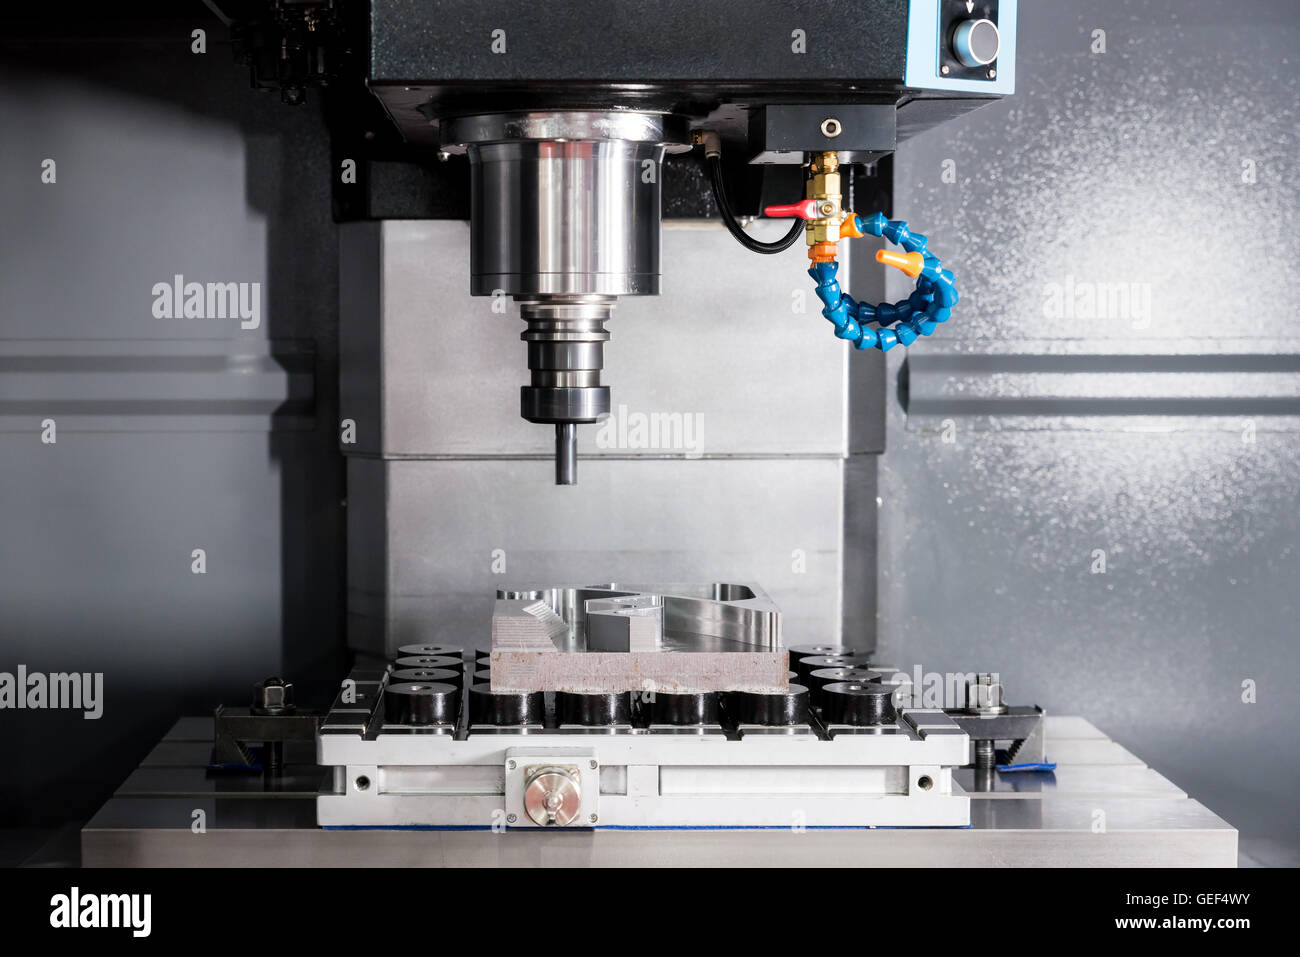 Electrical Discharge Machining Stockfotos & Electrical Discharge ...